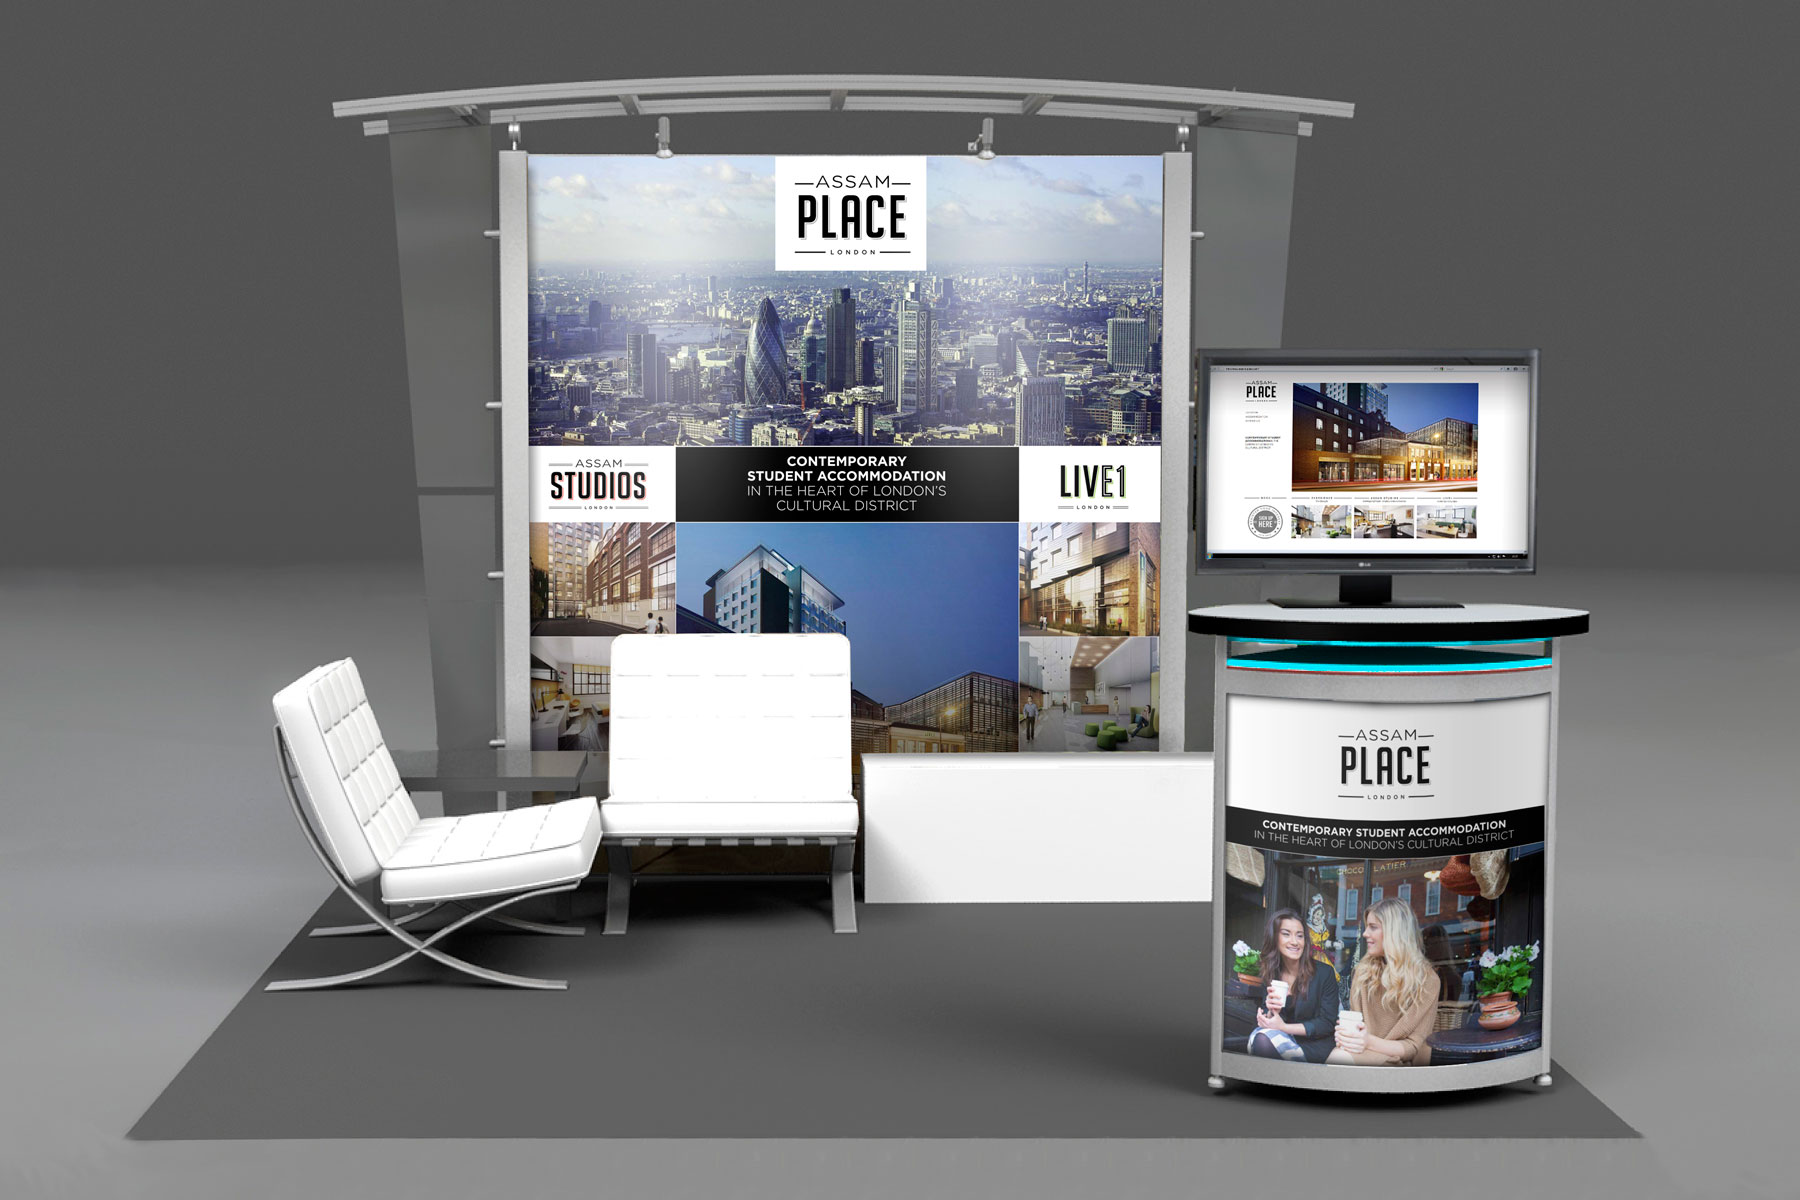 The brand exhibits at a number of shows around the world and we have produced a number of supporting materials.